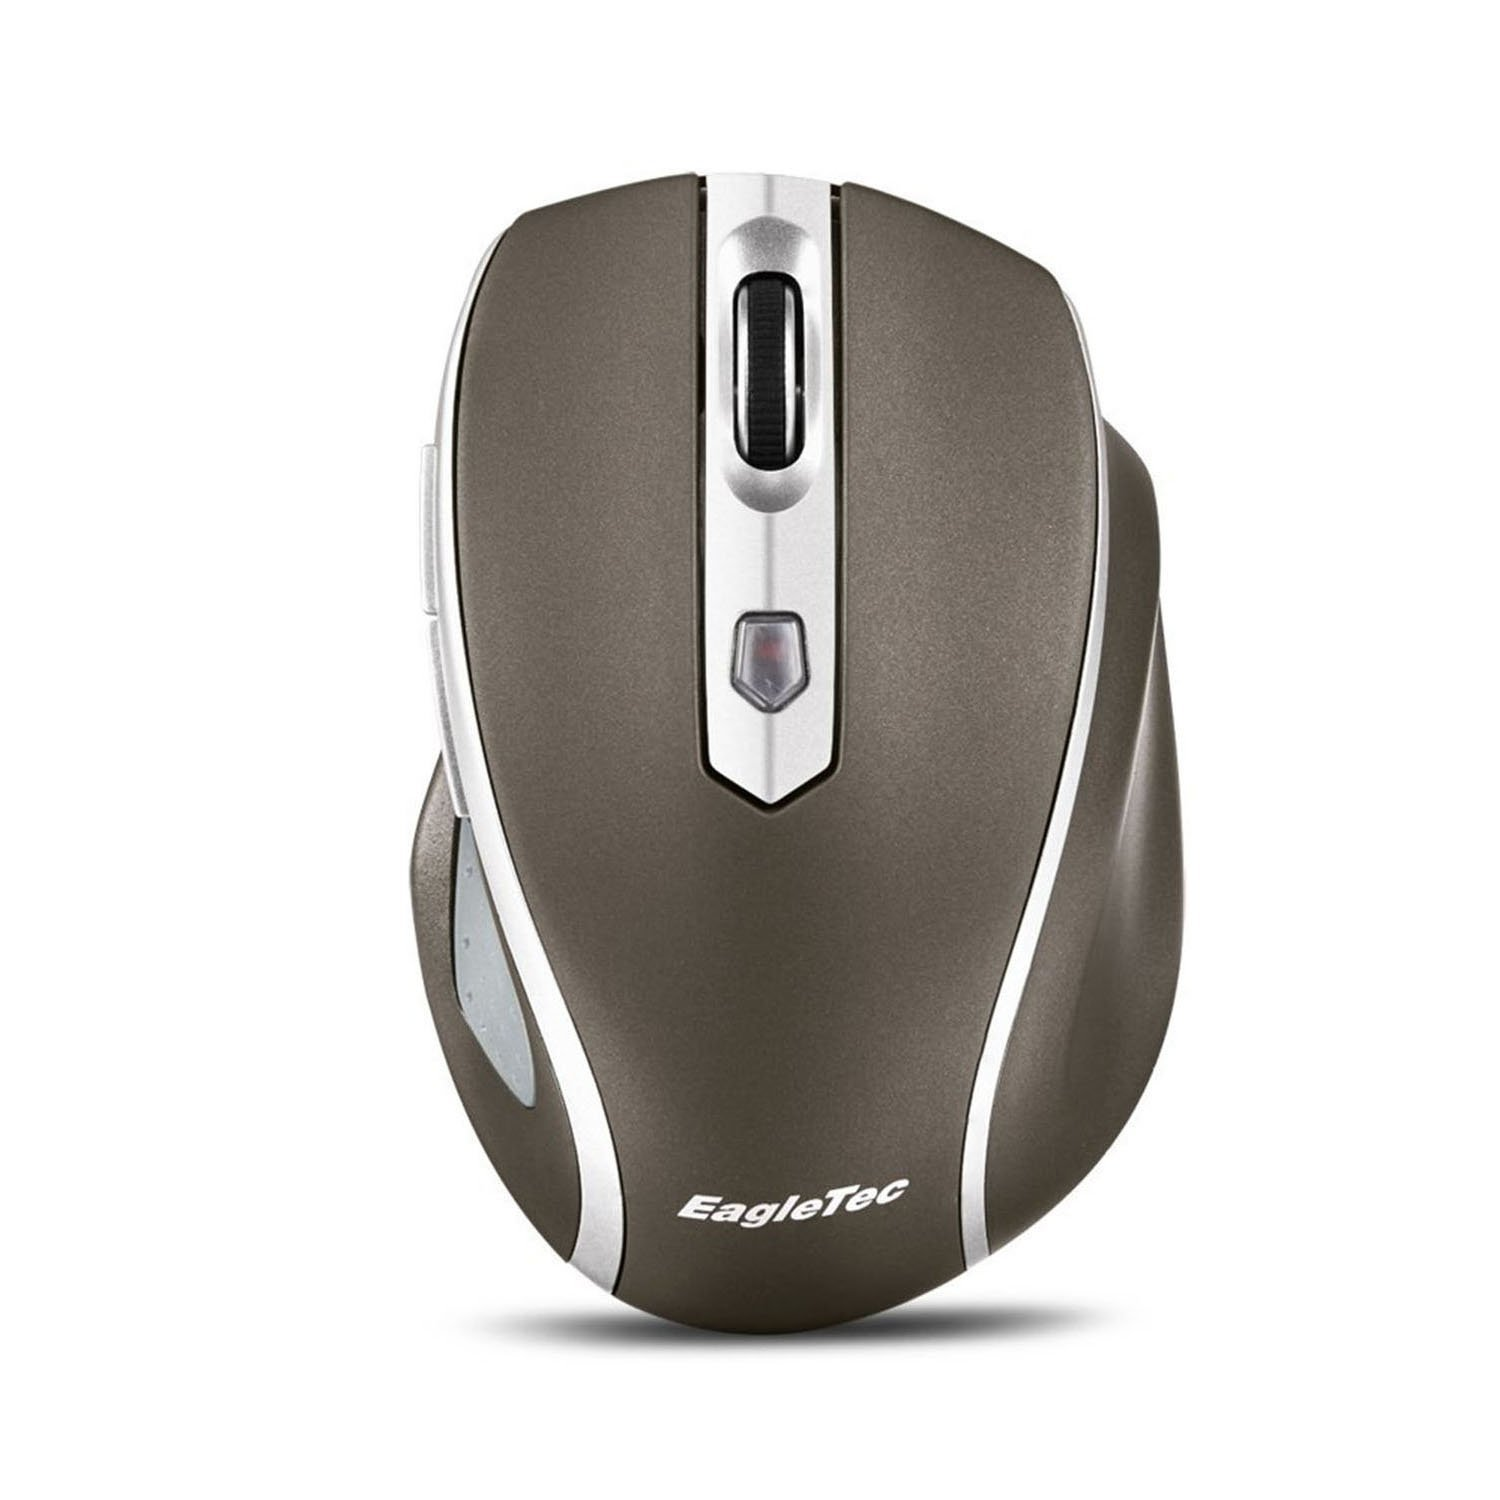 EagleTec MR5M2509 2.4GHz Wireless Optical Mouse, Switchable DPI 1000/1500/2000,5 Buttons, 2 Programming Keys with Nano USB Receiver (Gold Color) (2509-CG)